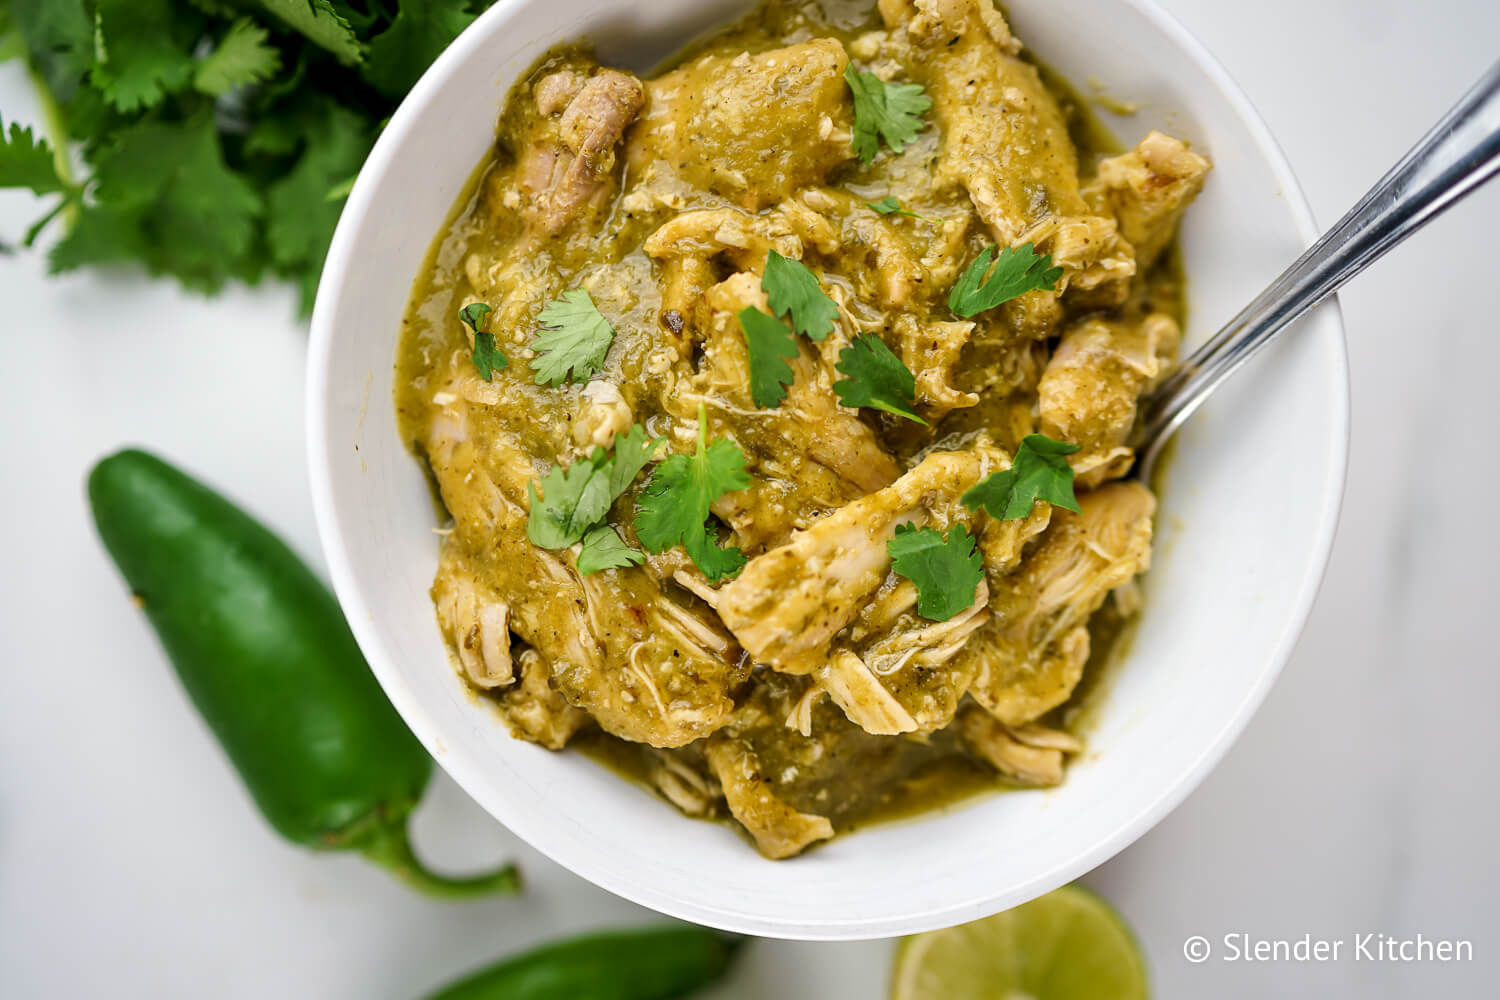 Slow Cooker Chile Verde in a bowl with cilantro and tortillas.